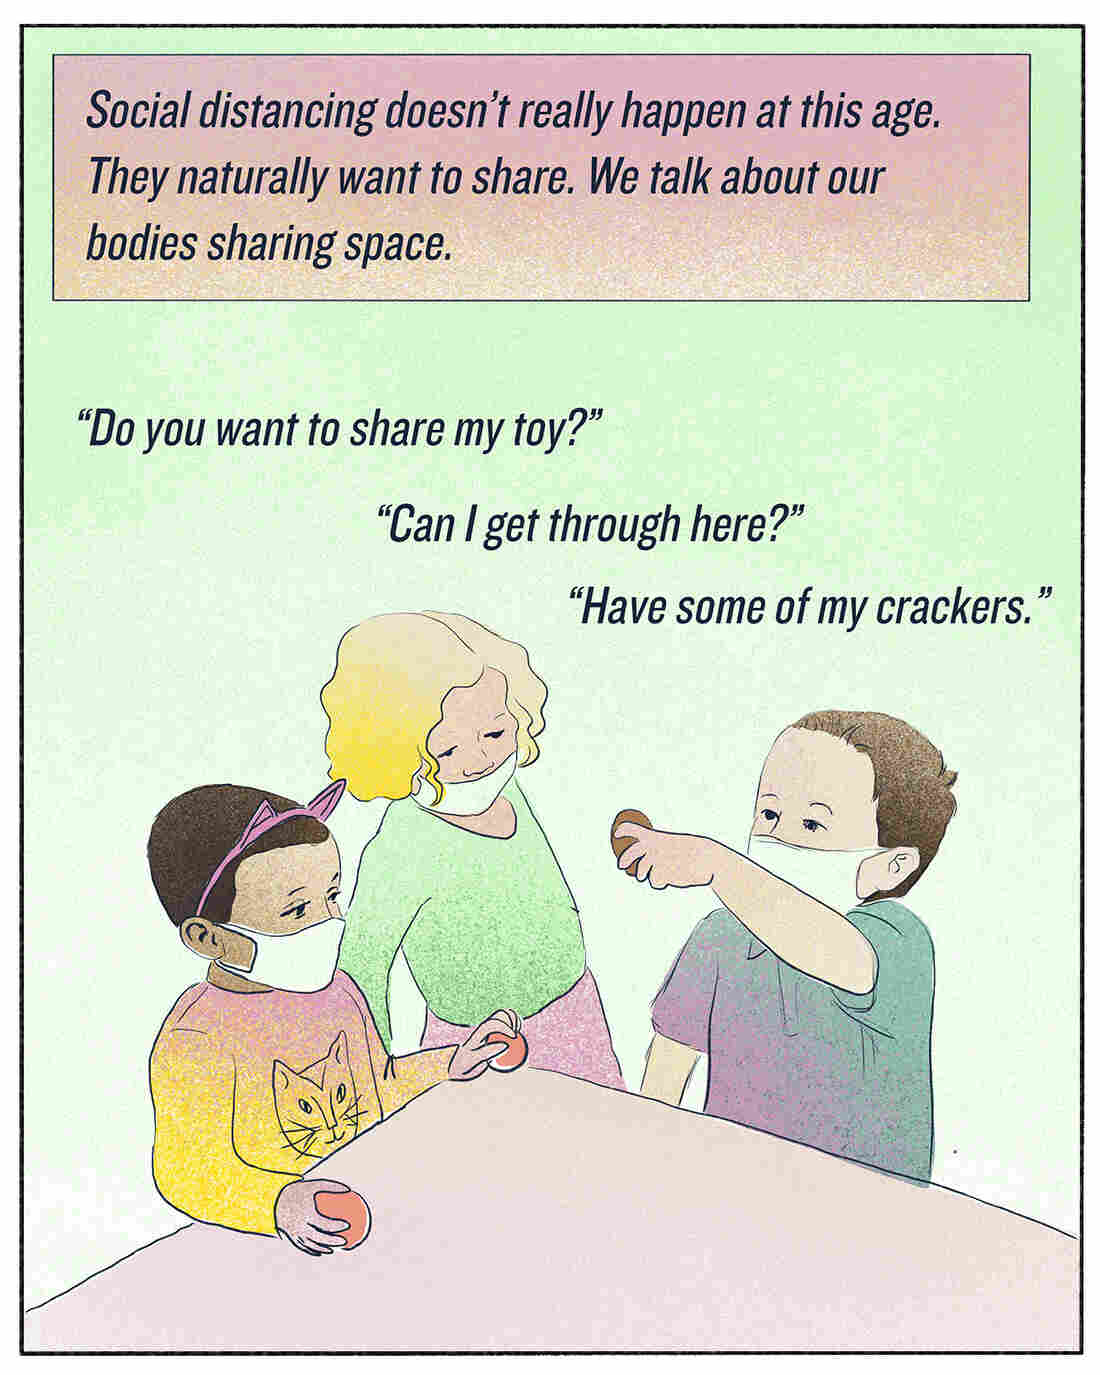 """""""Social distancing doesn't really happen at this age. They naturally want to share. We talk about our bodies sharing space."""""""